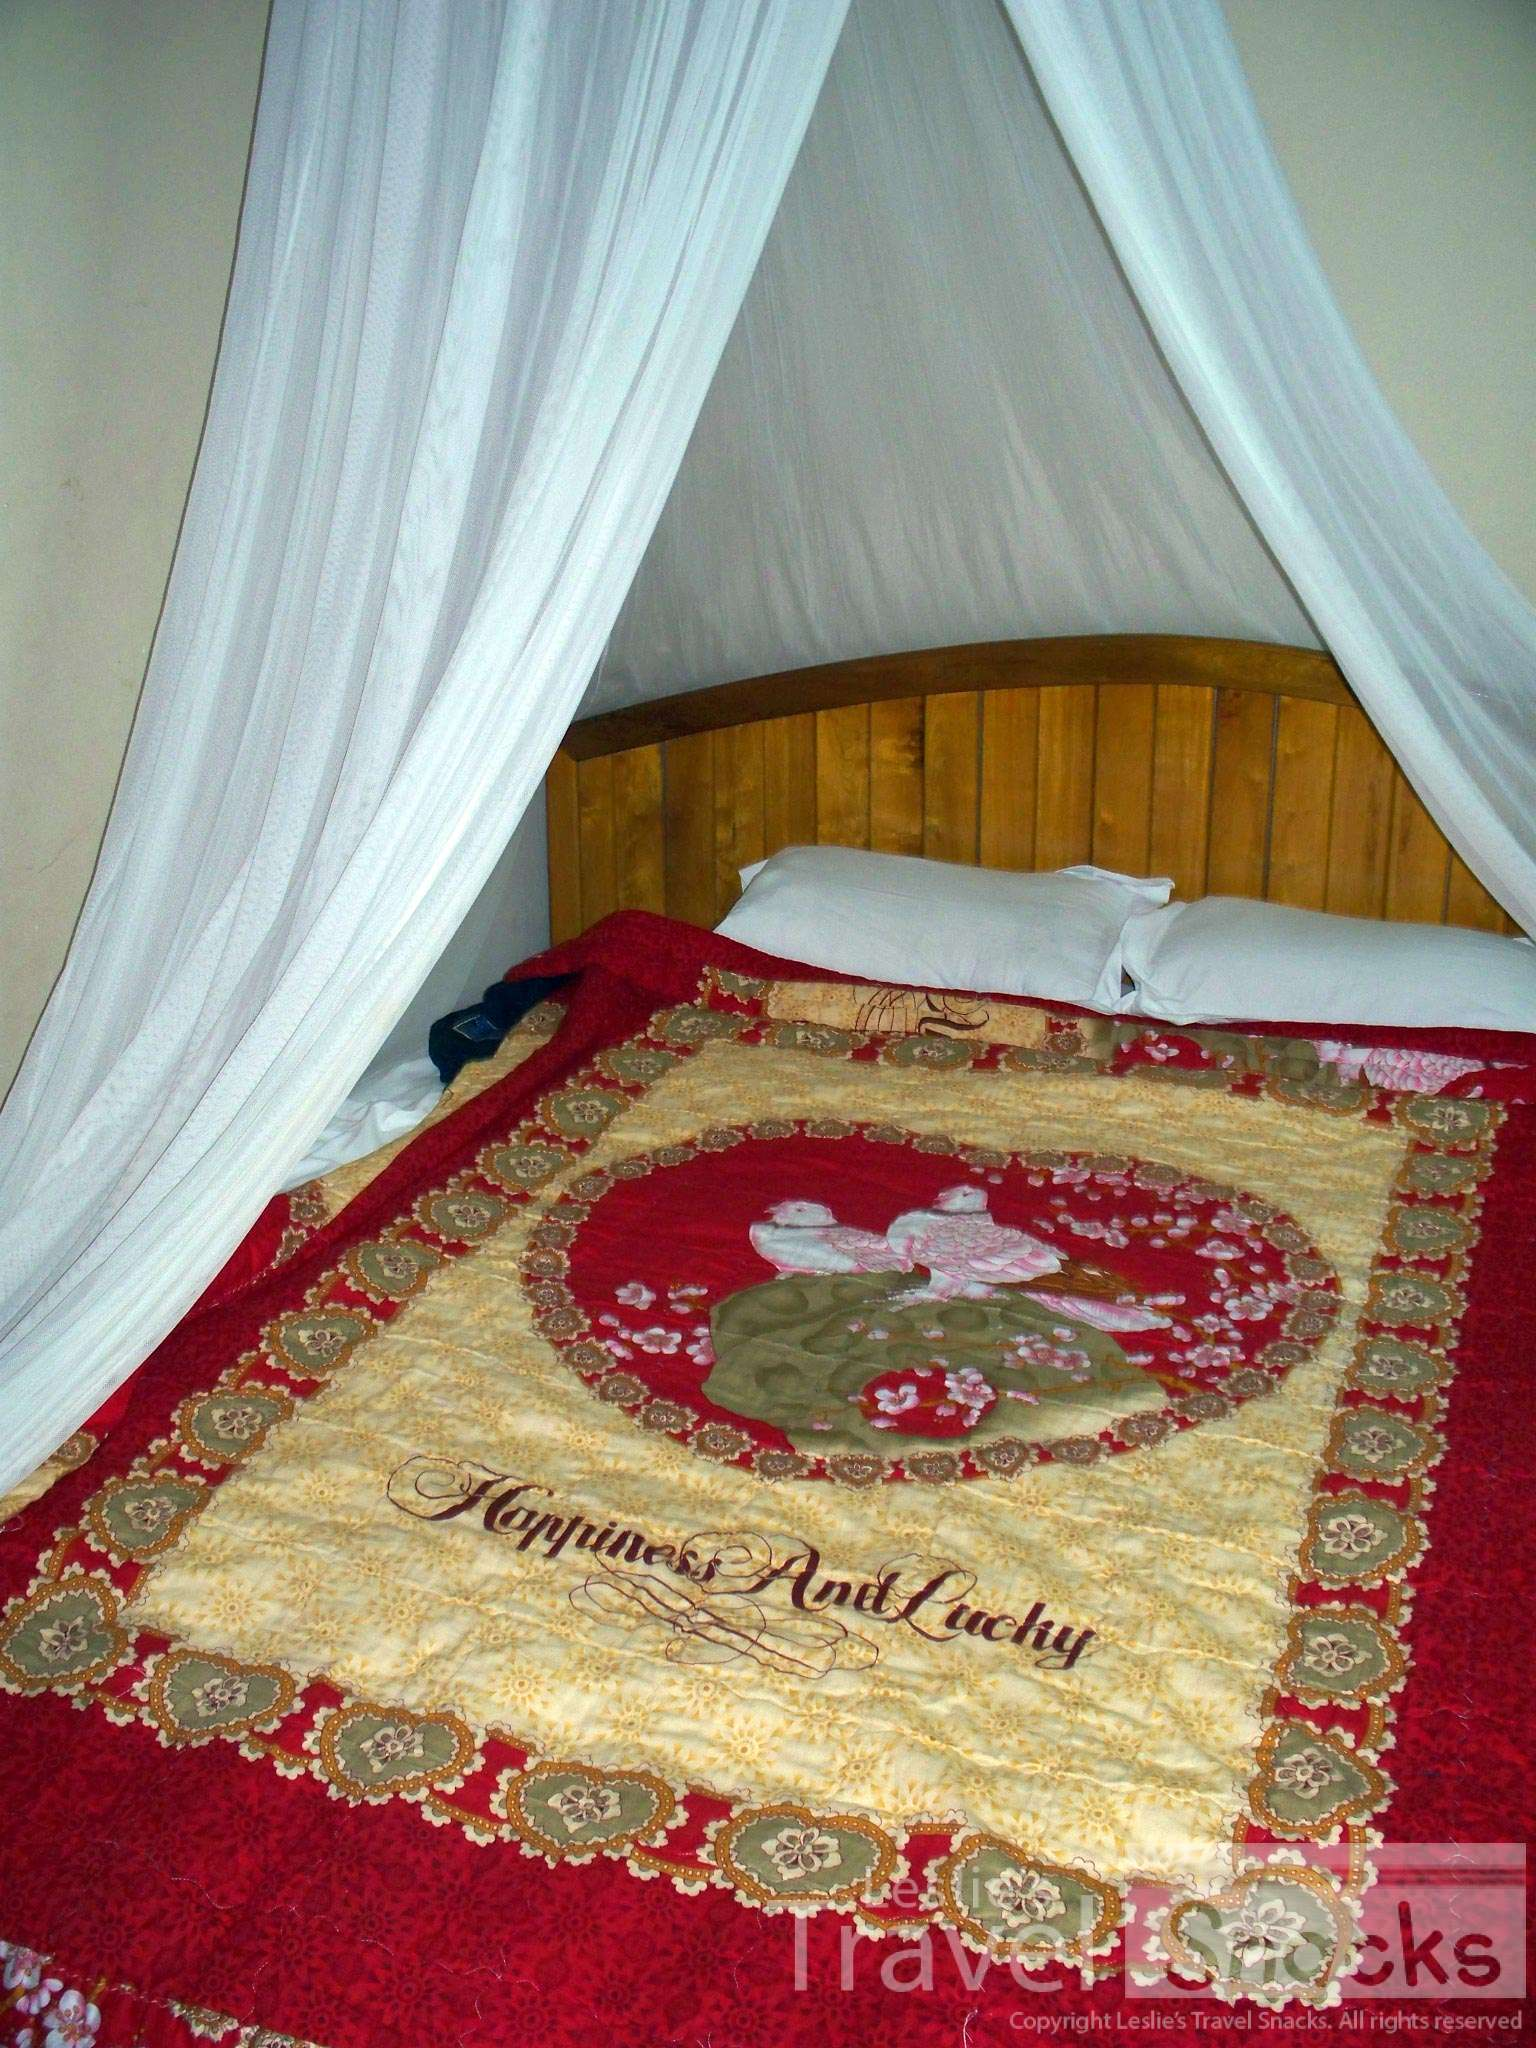 Mosquito nets can conjure visions of an exotic luxurious (maybe even romantic?) bed. How do you like that bedspread?! LOL